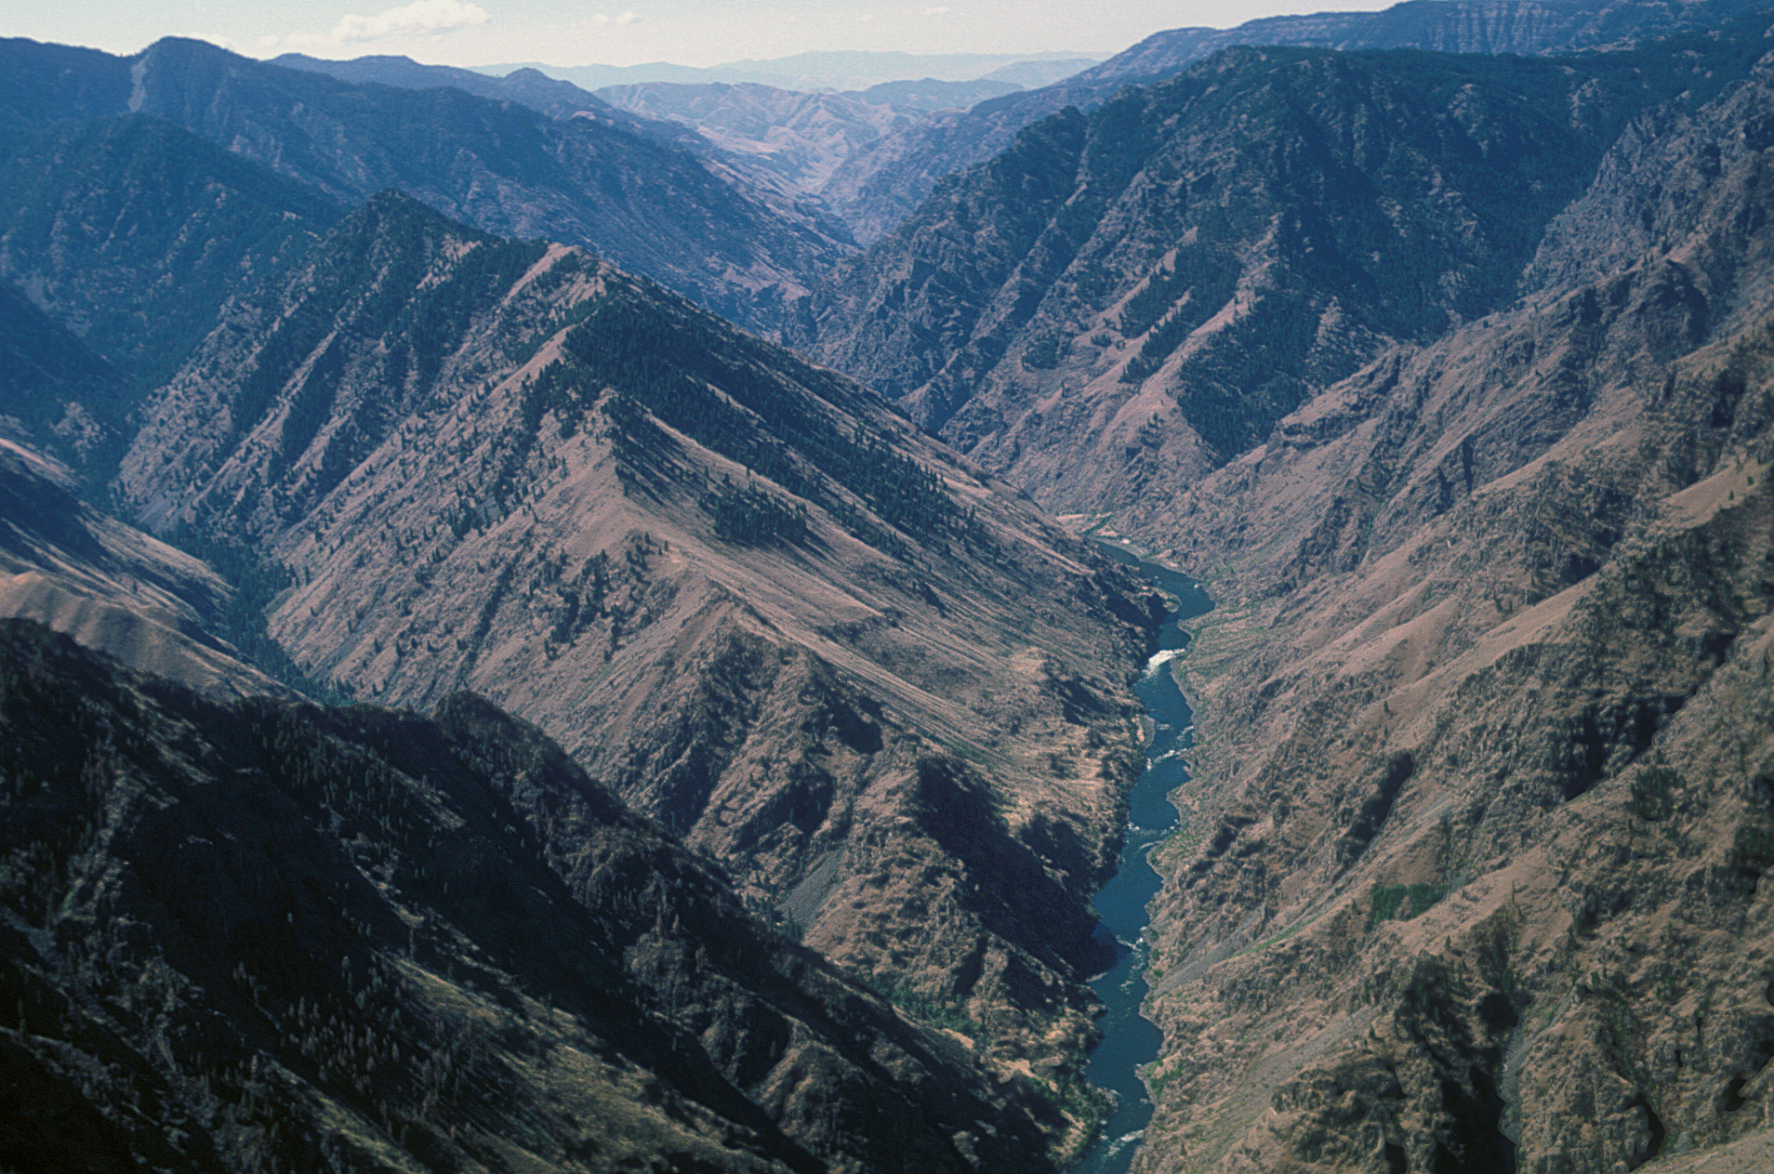 View of Hells Canyon with the Snake River in the Hells Canyon National Recreation Area on the Wallowa Whitman National Forest (USDA Forest Service)